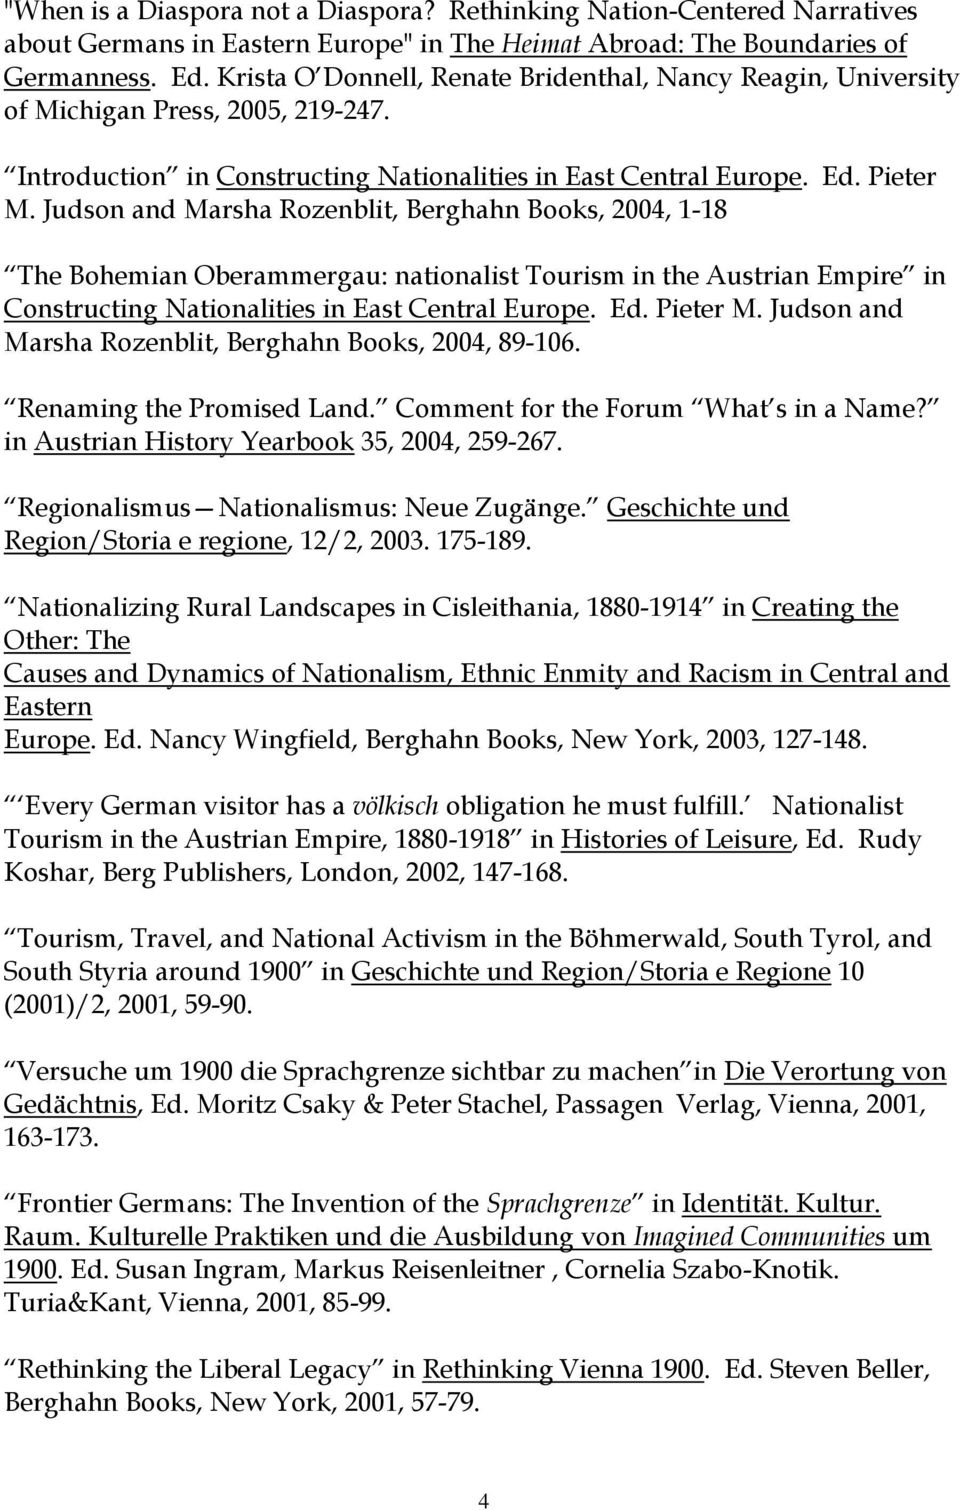 Judson and Marsha Rozenblit, Berghahn Books, 2004, 1-18 The Bohemian Oberammergau: nationalist Tourism in the Austrian Empire in Constructing Nationalities in East Central Europe. Ed. Pieter M.